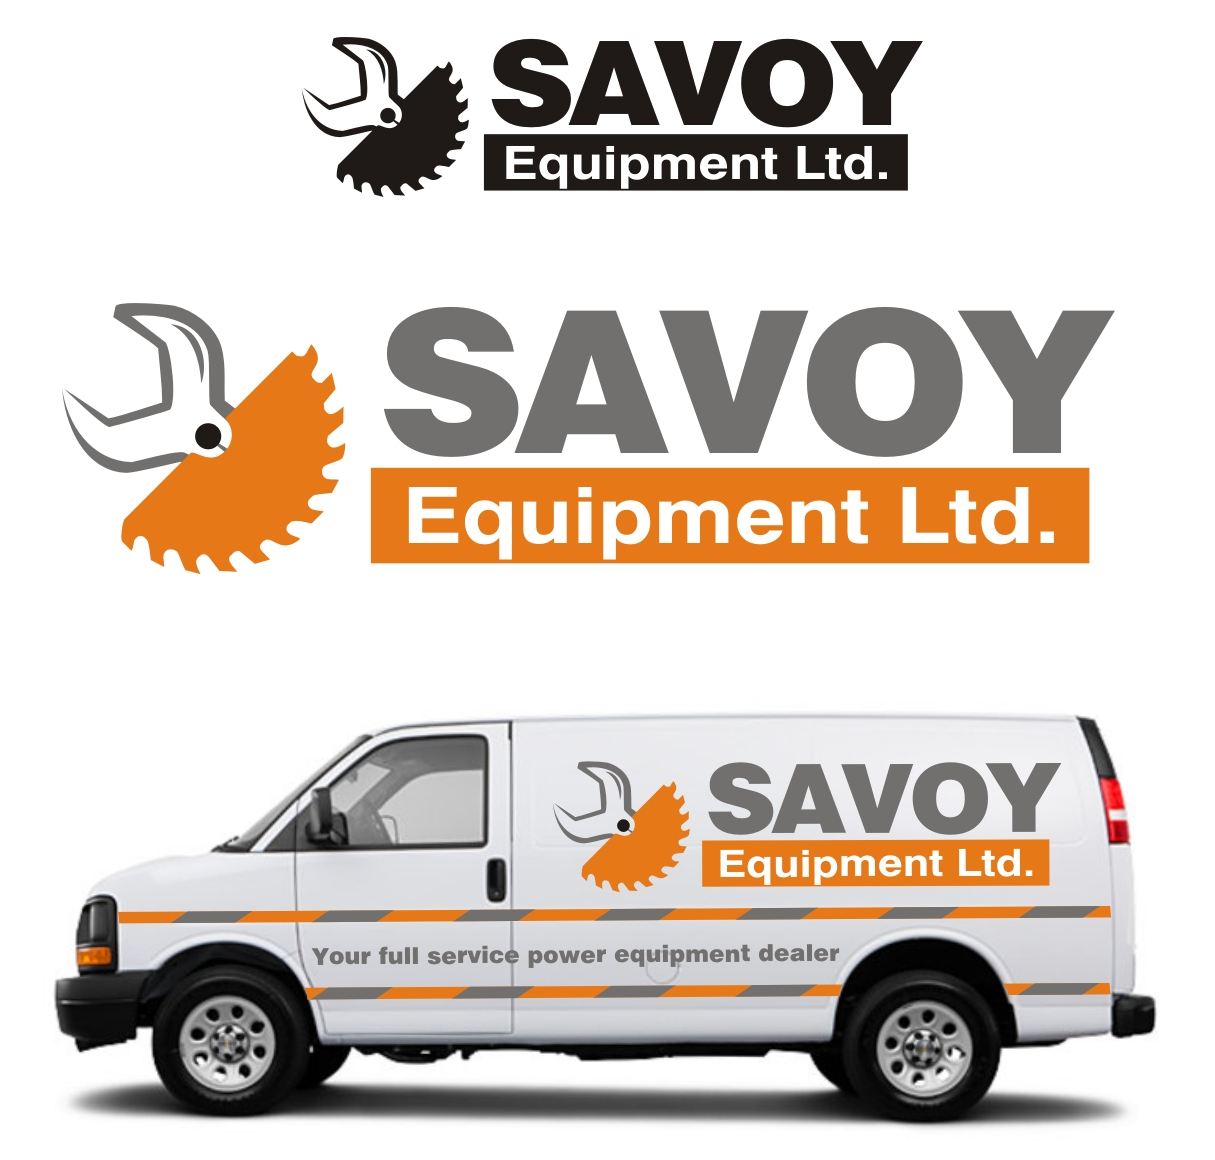 Logo Design by George Nousias - Entry No. 71 in the Logo Design Contest Inspiring Logo Design for Savoy Equipment Ltd..